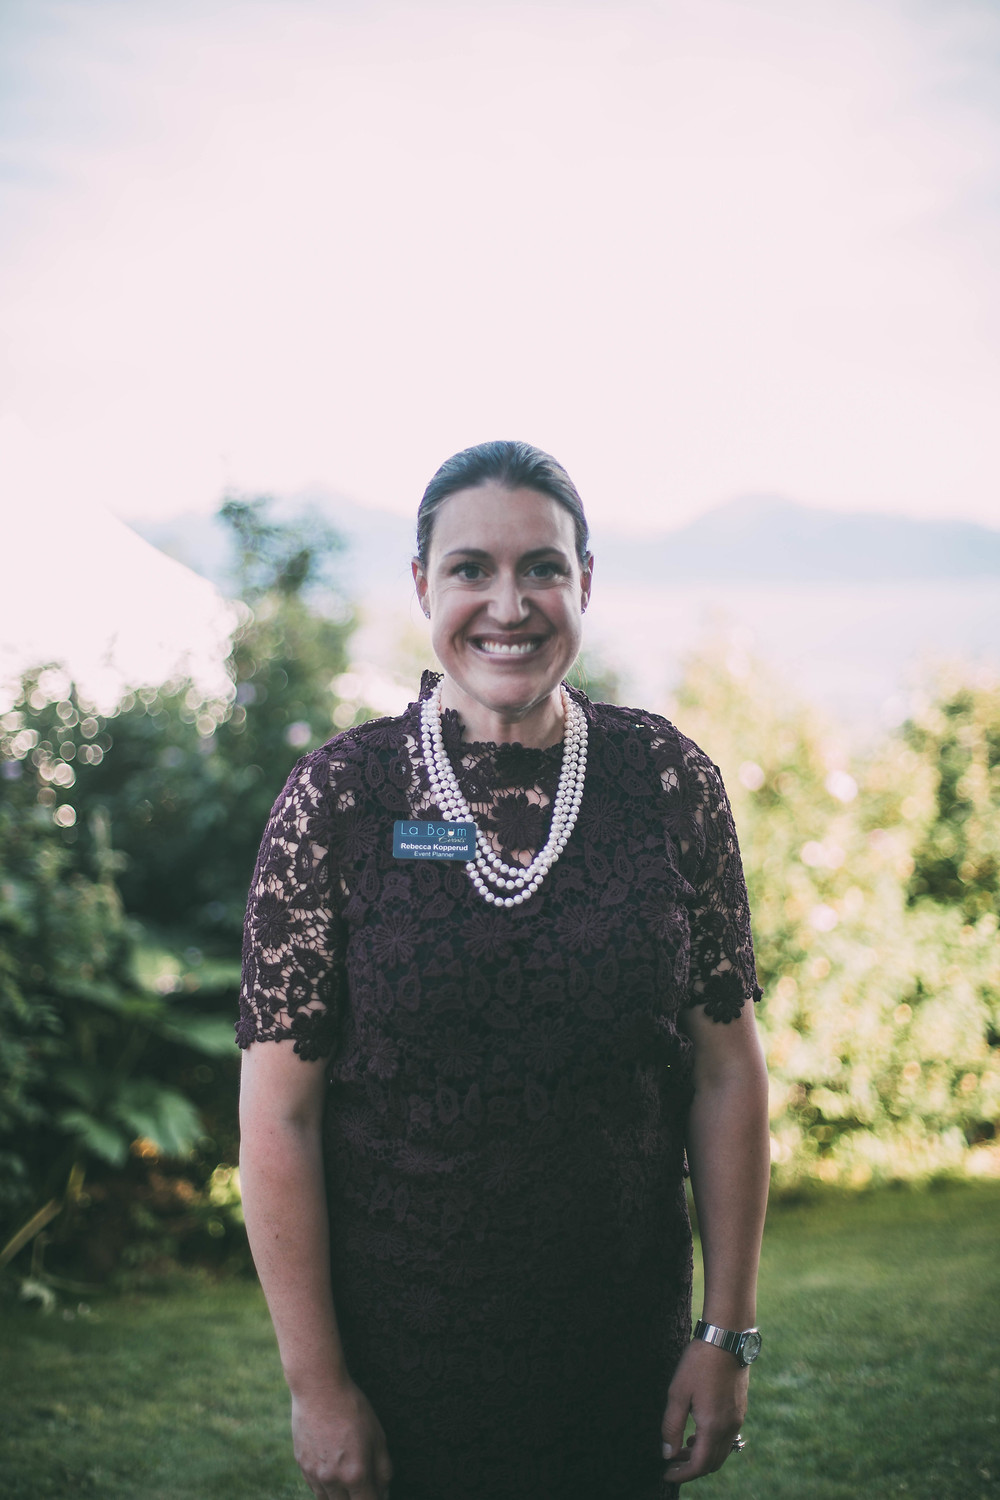 Rebecca Kopperud, event planner of La Boum Events scenic place peony farm, field to vase dinner, wedding and event venue, homer, alaska, AK